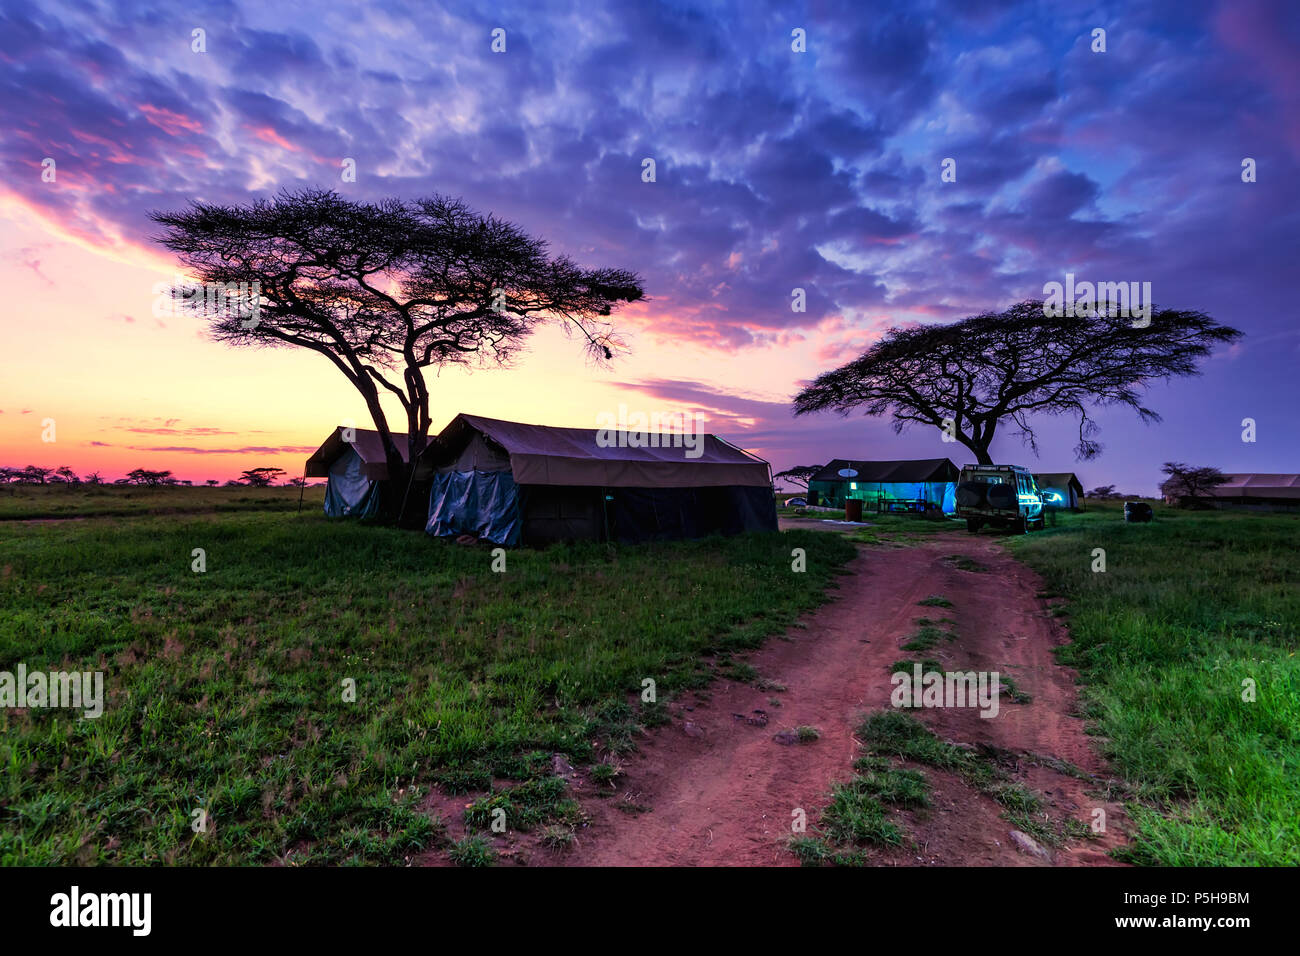 Expedition overnight in tents in savanna camp - Stock Image